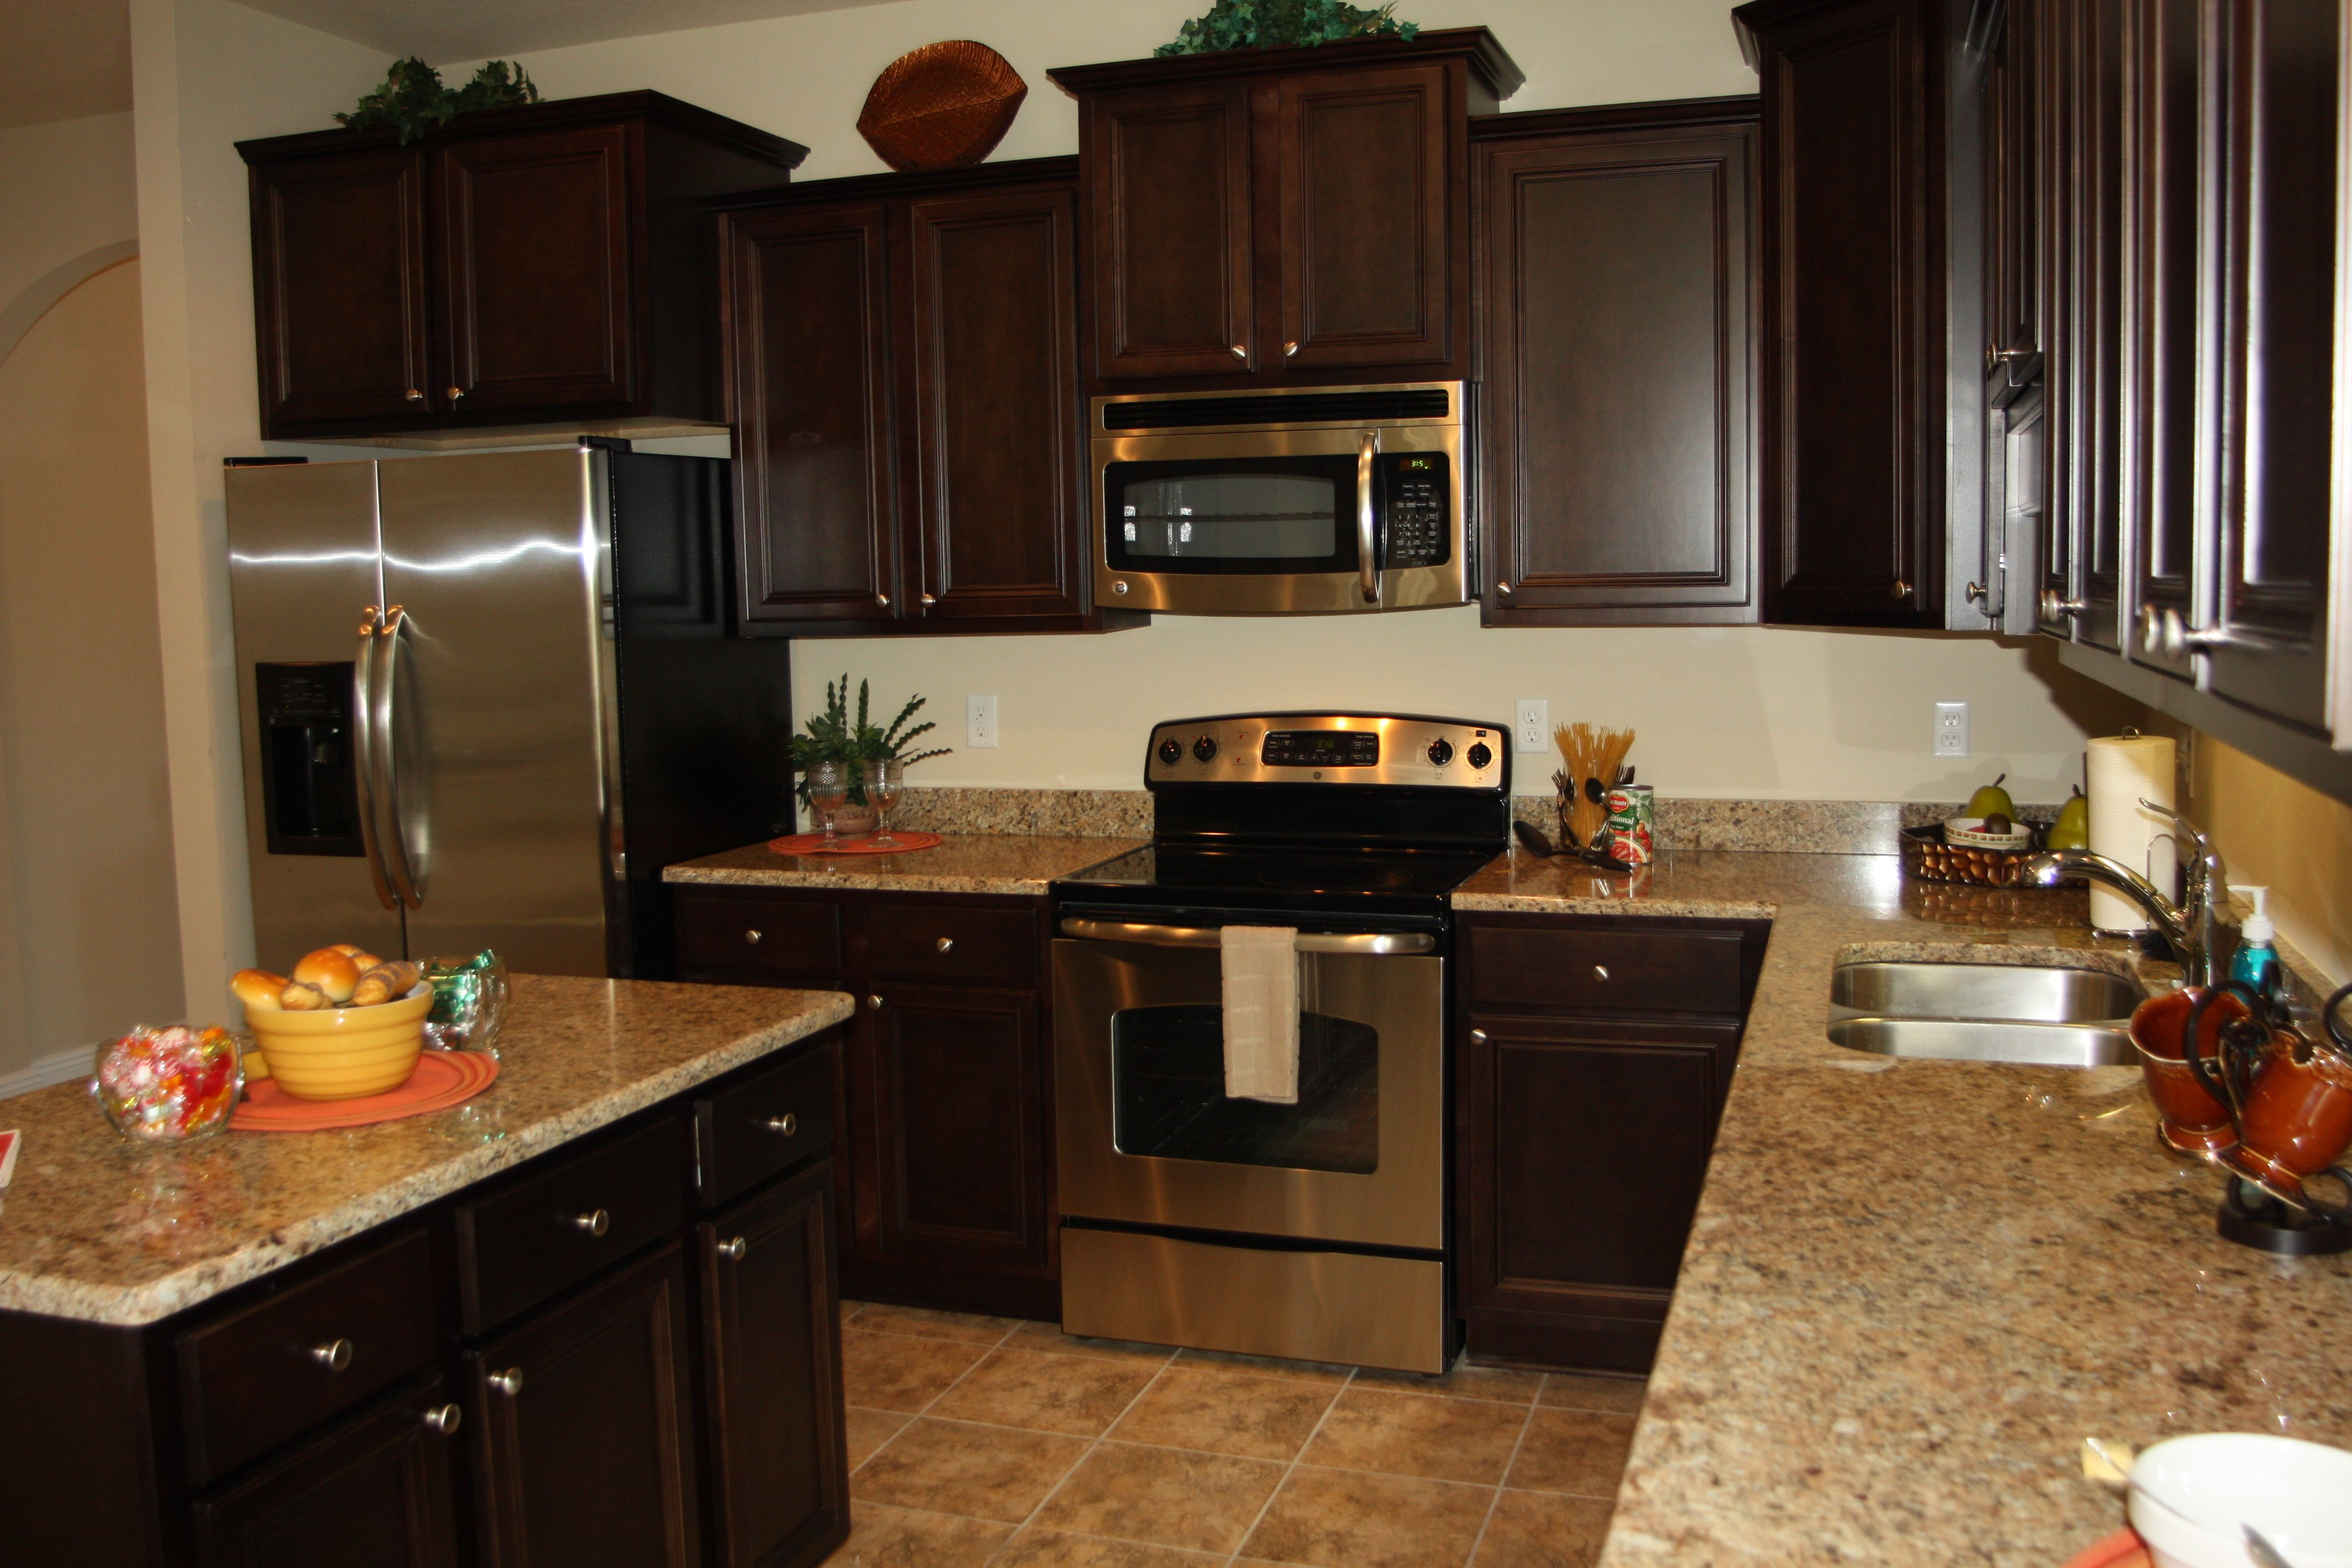 The Bailey Floor Plan S Kitchen Features Stacked Cabinets And Stainless Steel Appliances In Areas On The Gulf Coast Whe Kitchen Cabinets Kitchen Kitchen Design